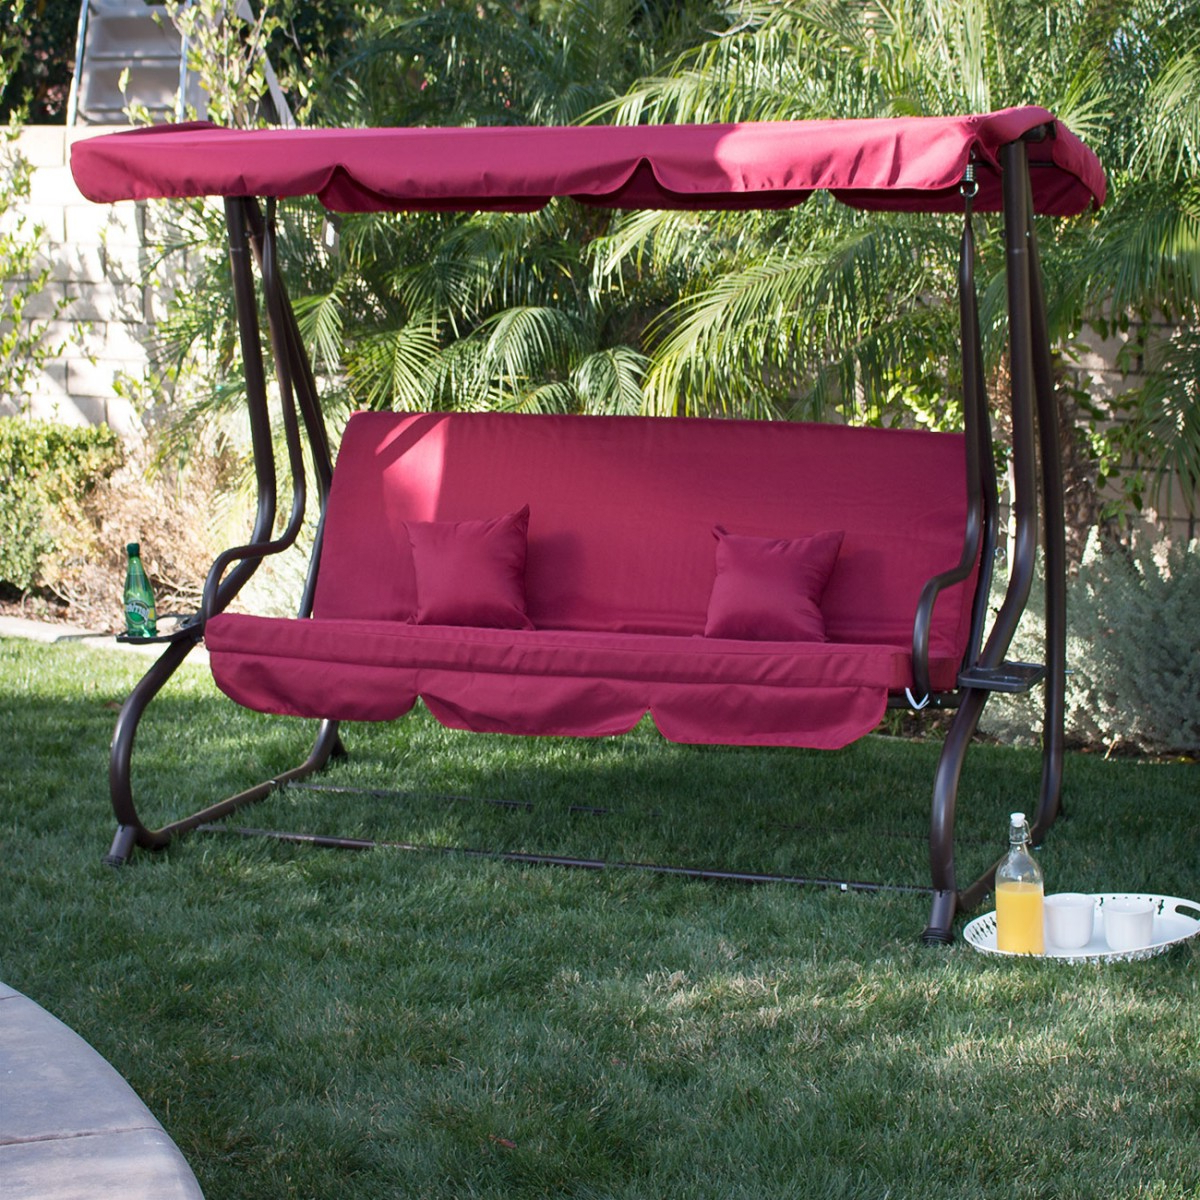 Best And Newest Canopy Patio Porch Swings With Pillows And Cup Holders With Regard To Belleze Outdoor Canopy Porch Swing/bed Hammock Tilt Canopy With Steel Frame (burgundy) (View 12 of 25)